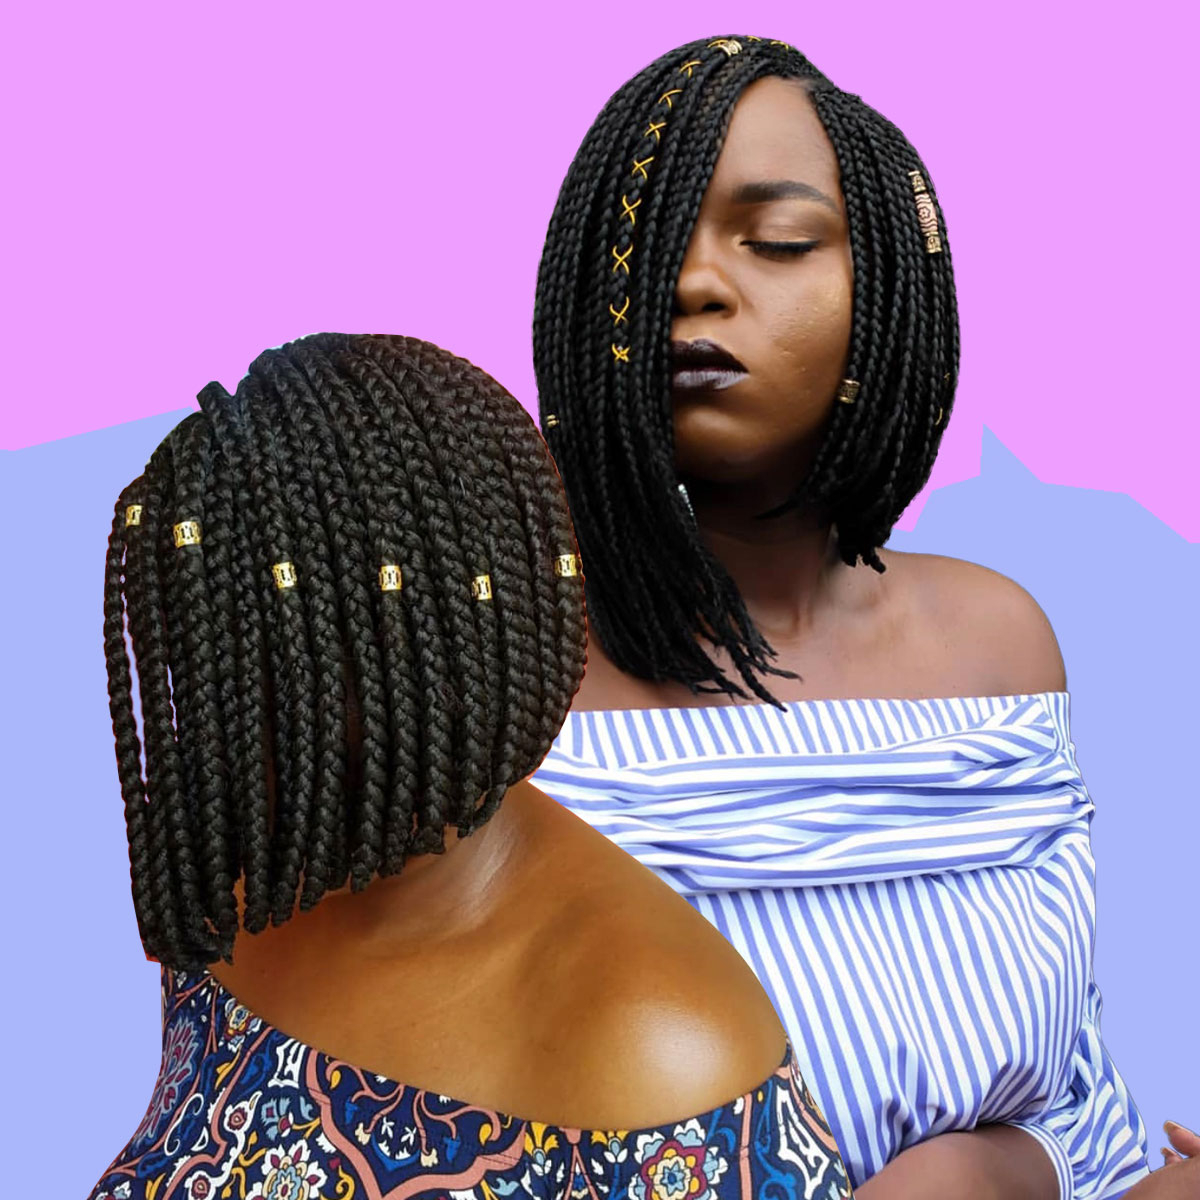 17 Beautiful Braided Bobs From Instagram You Need To Give A Try Inside Favorite Mini Braids Bob Hairstyles (Gallery 1 of 20)